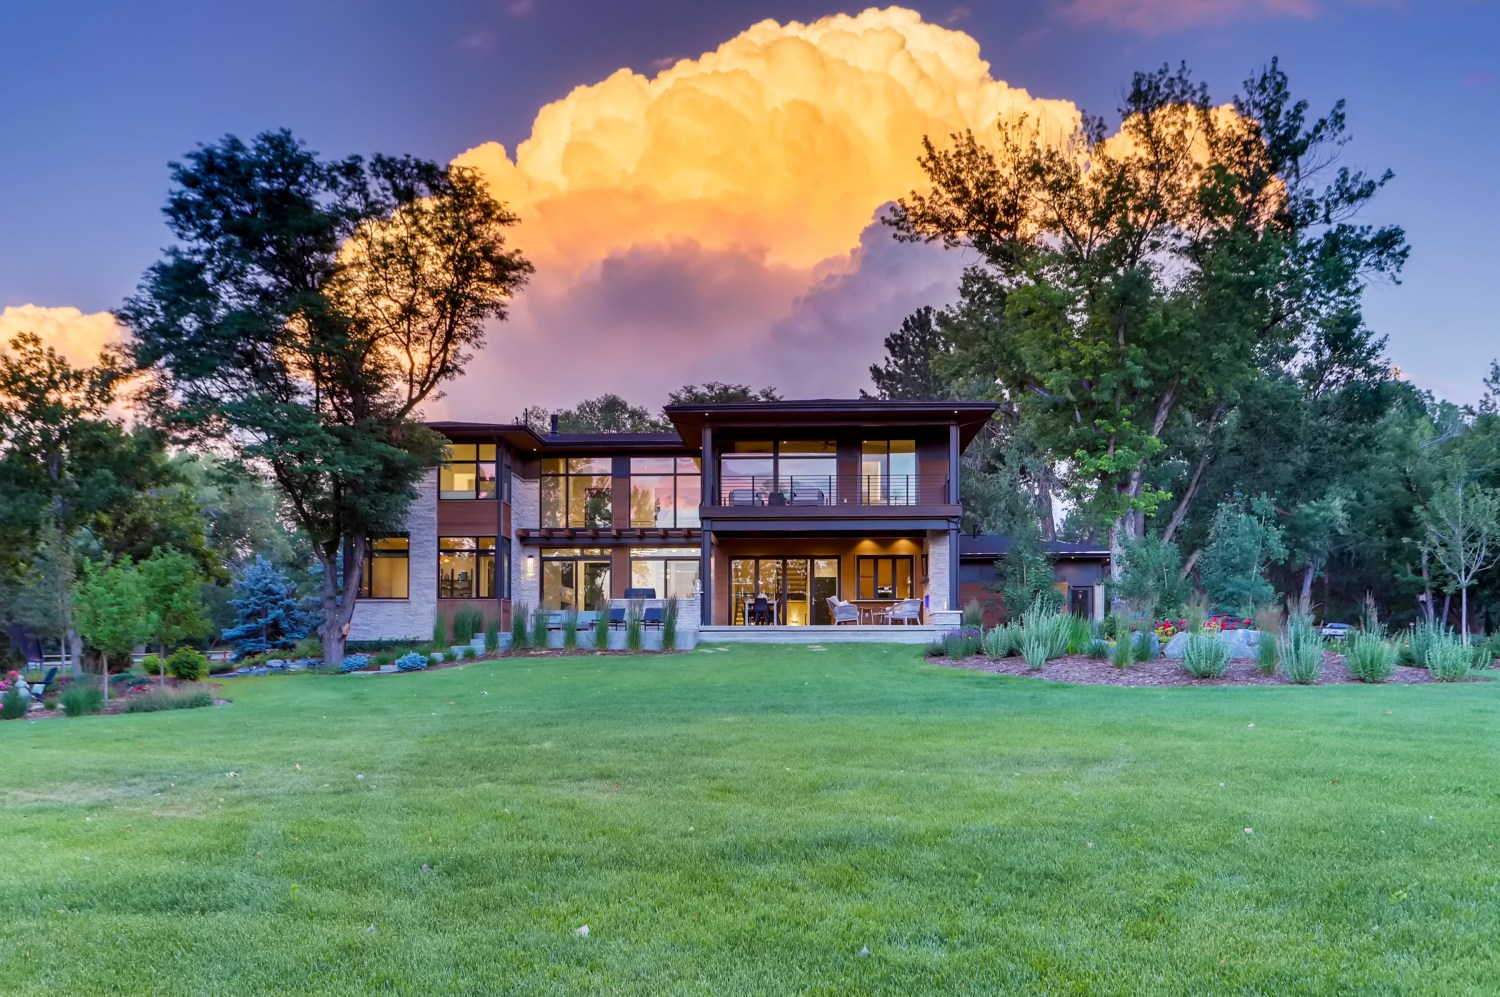 Rear of custom home with storm clouds